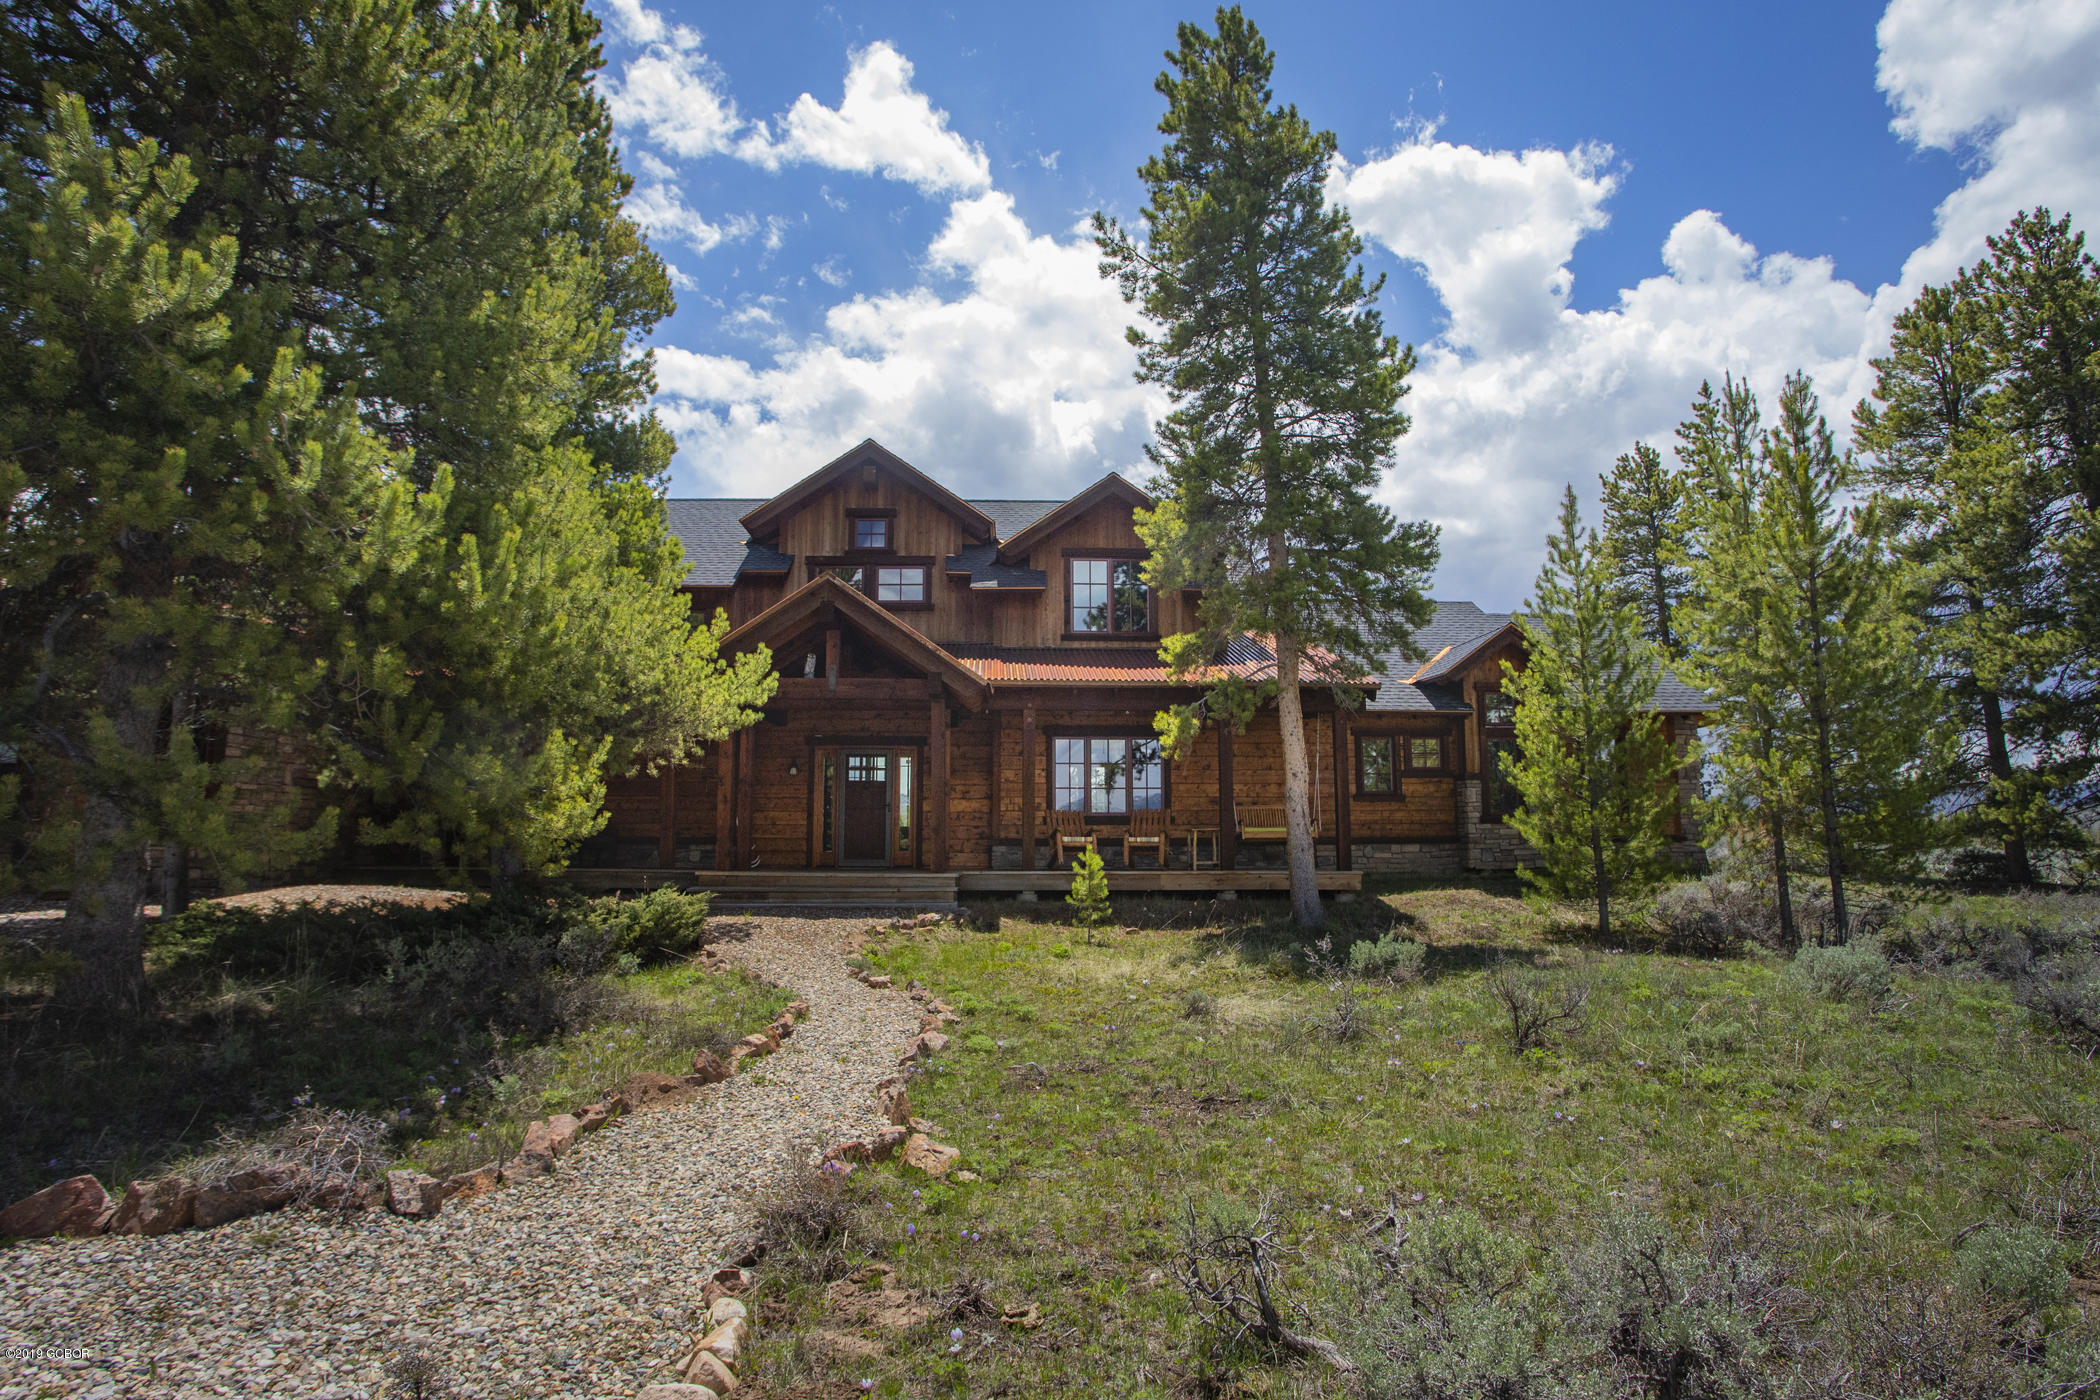 MLS# 19-704 - 5 - 612 County Rd 6237  #, Granby, CO 80446